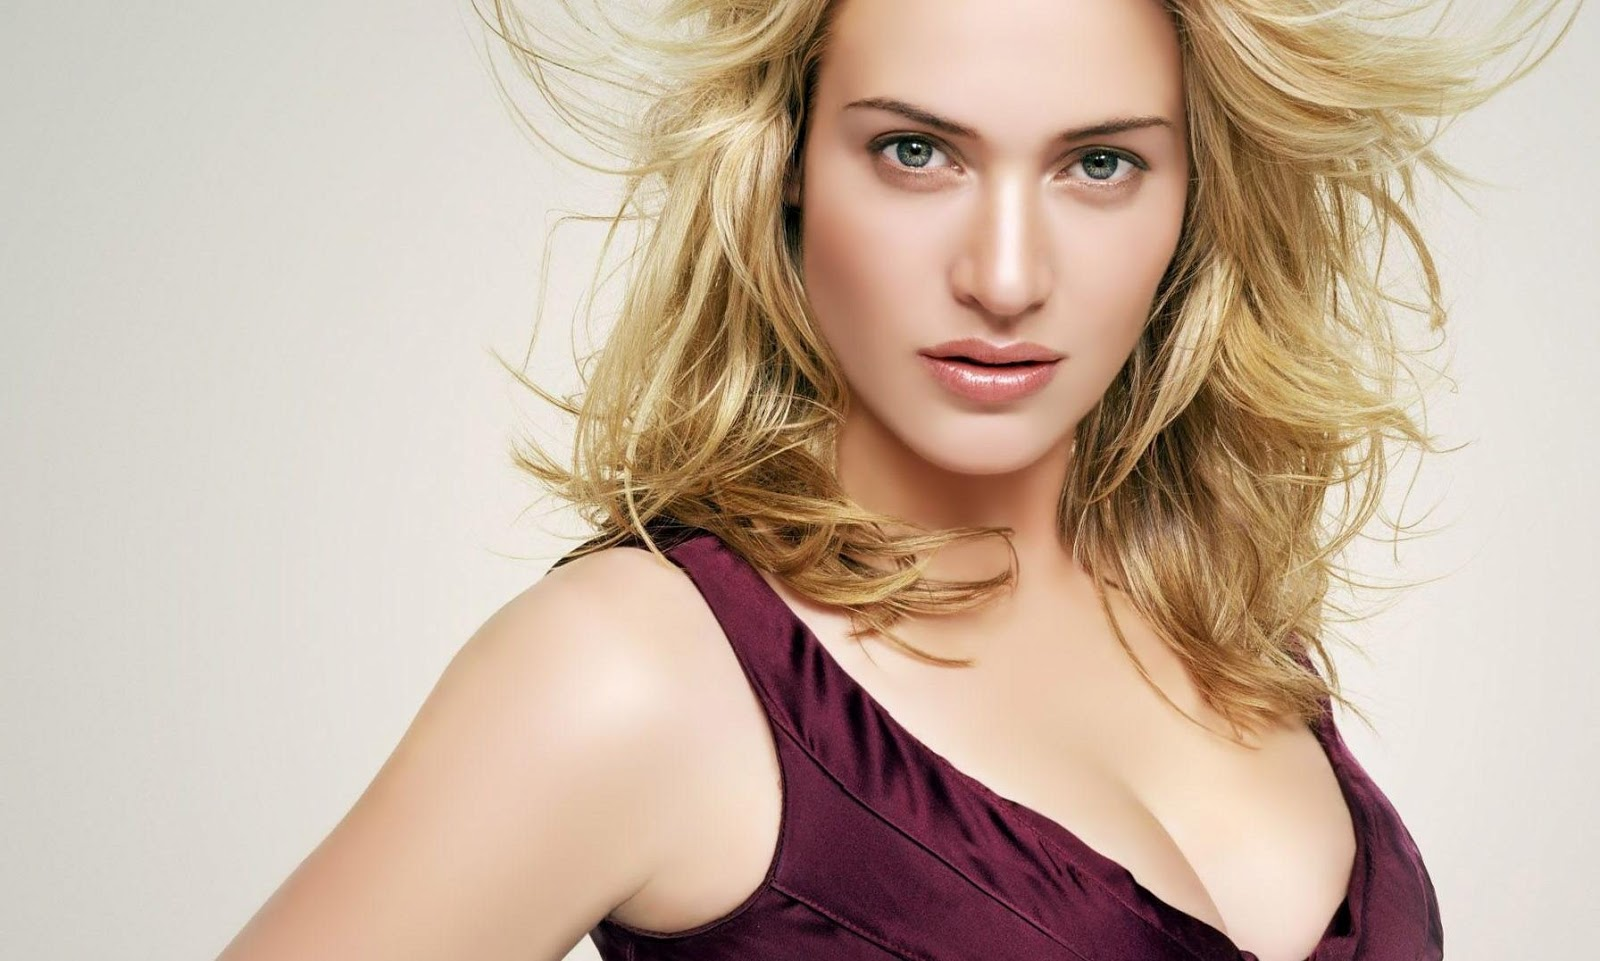 Actress Pictures: Kate Winslet Hot Kate Winslet